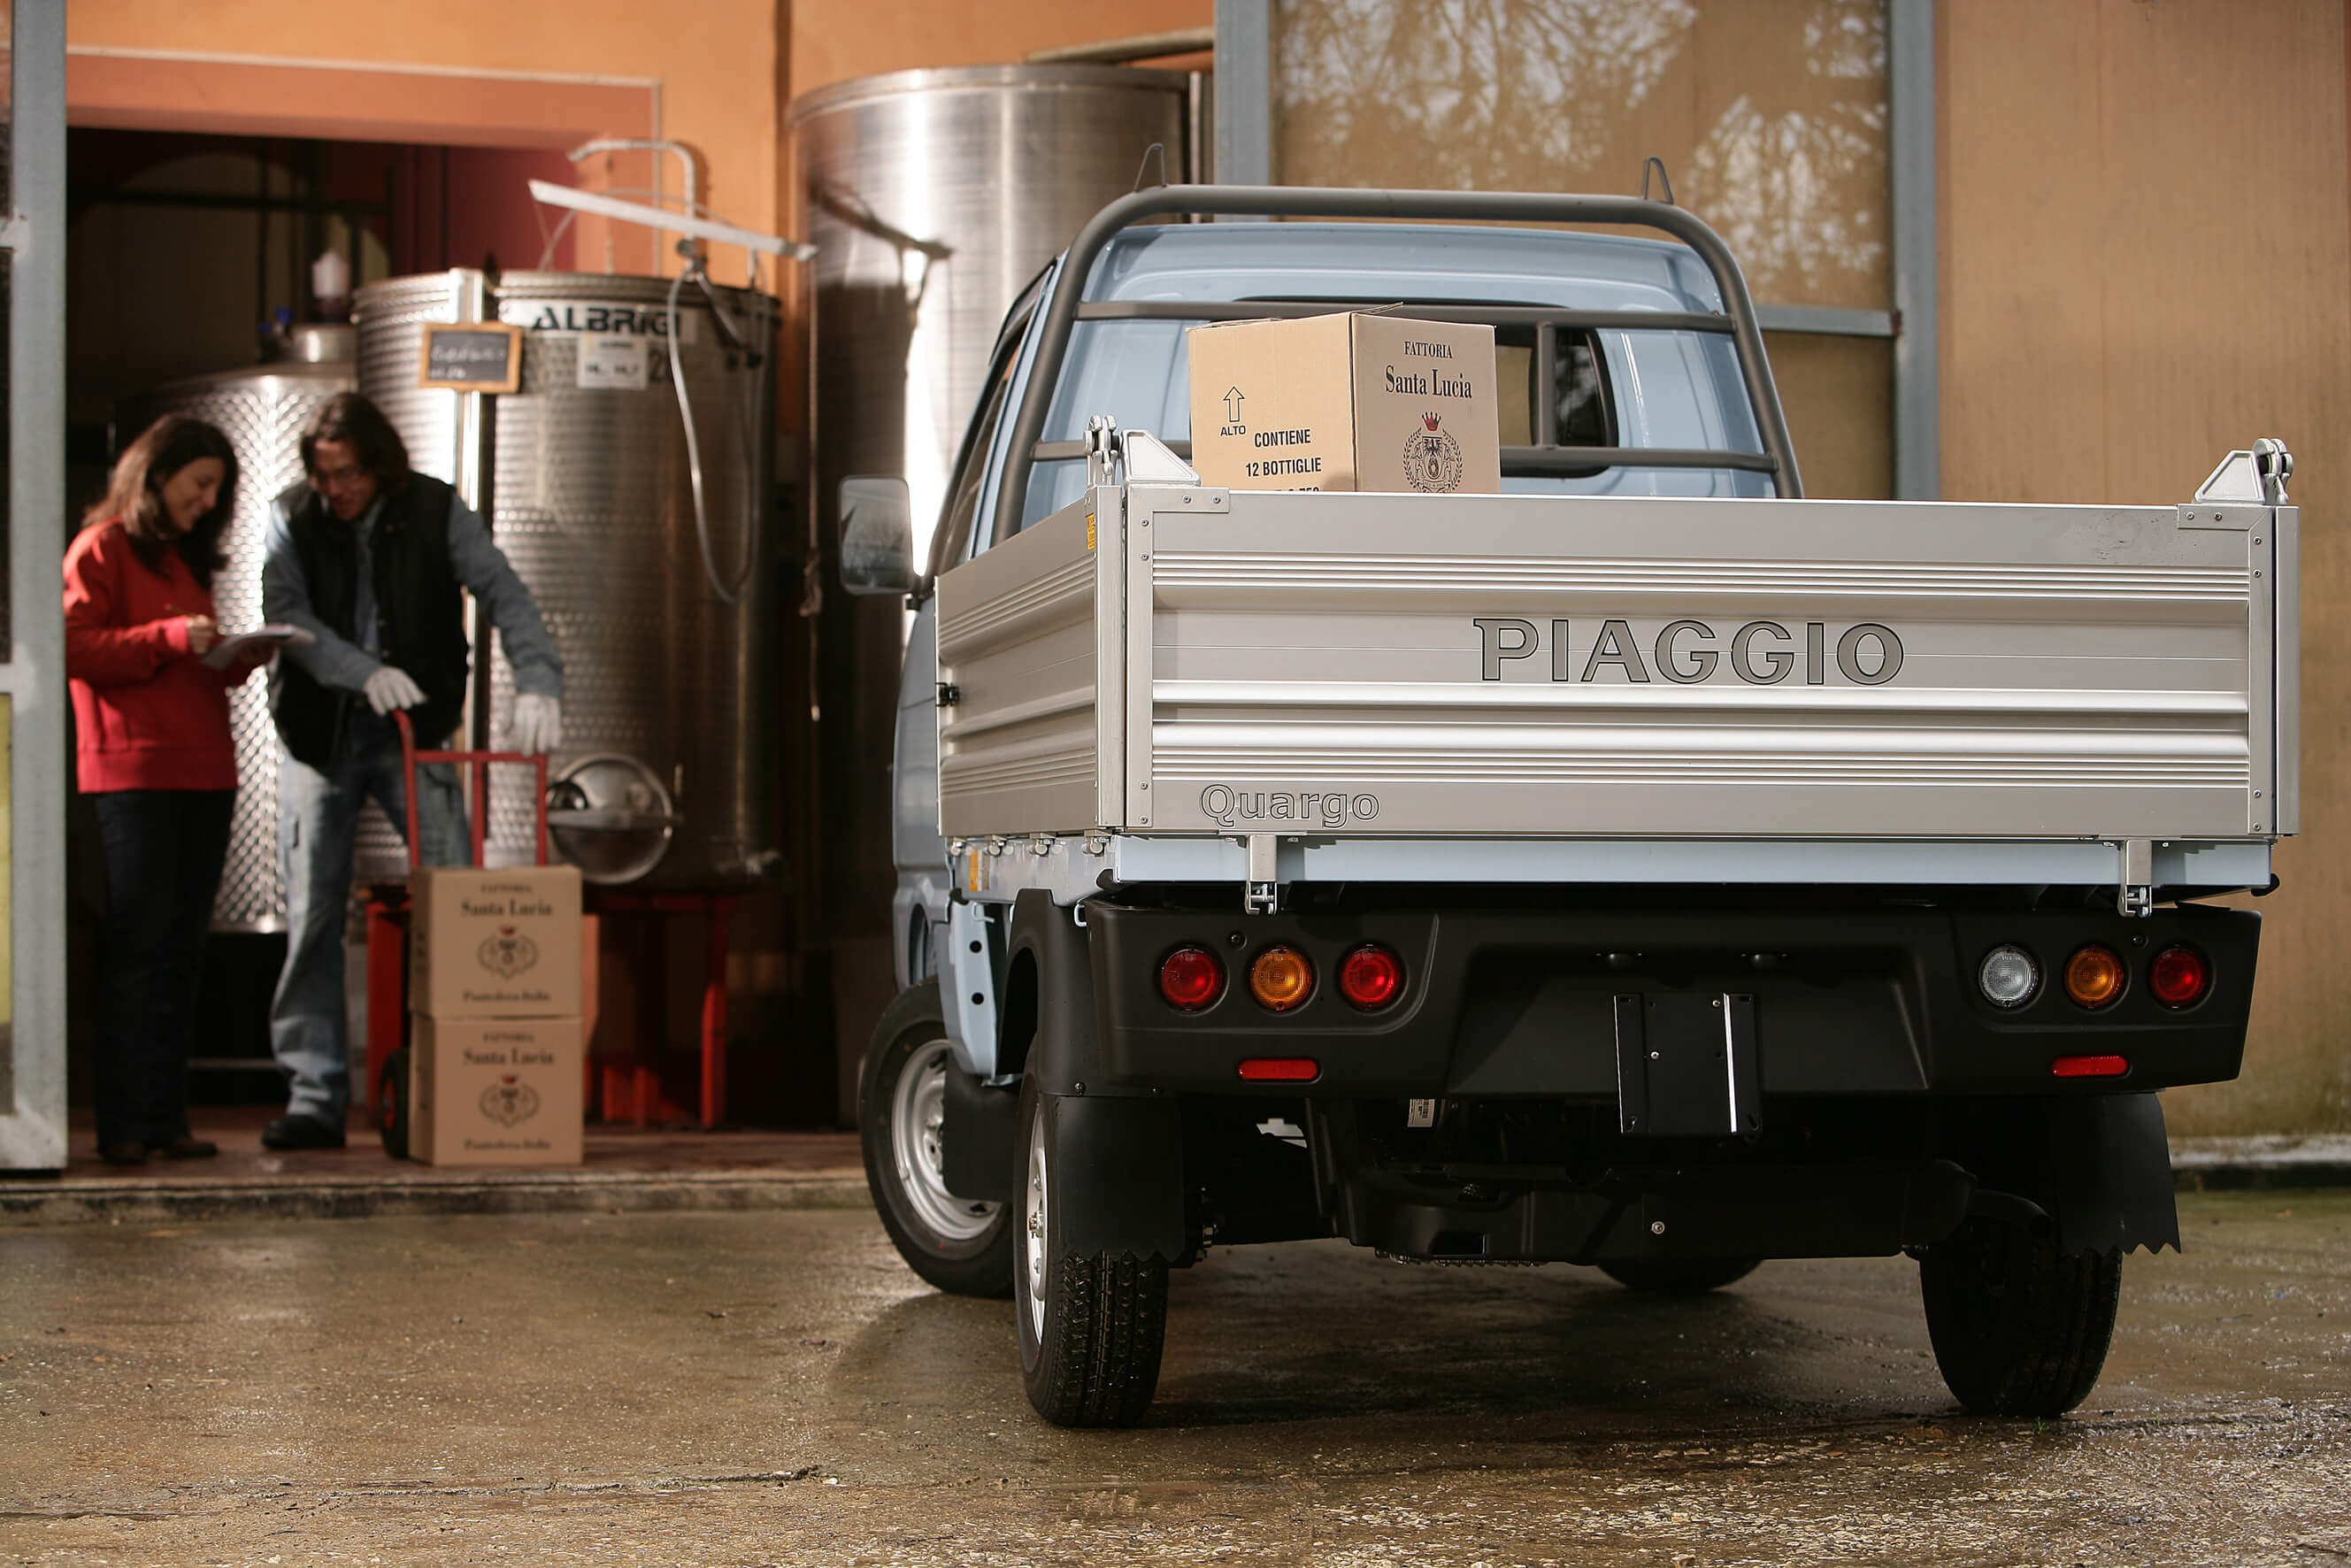 Piaggio Commercial Vehicle